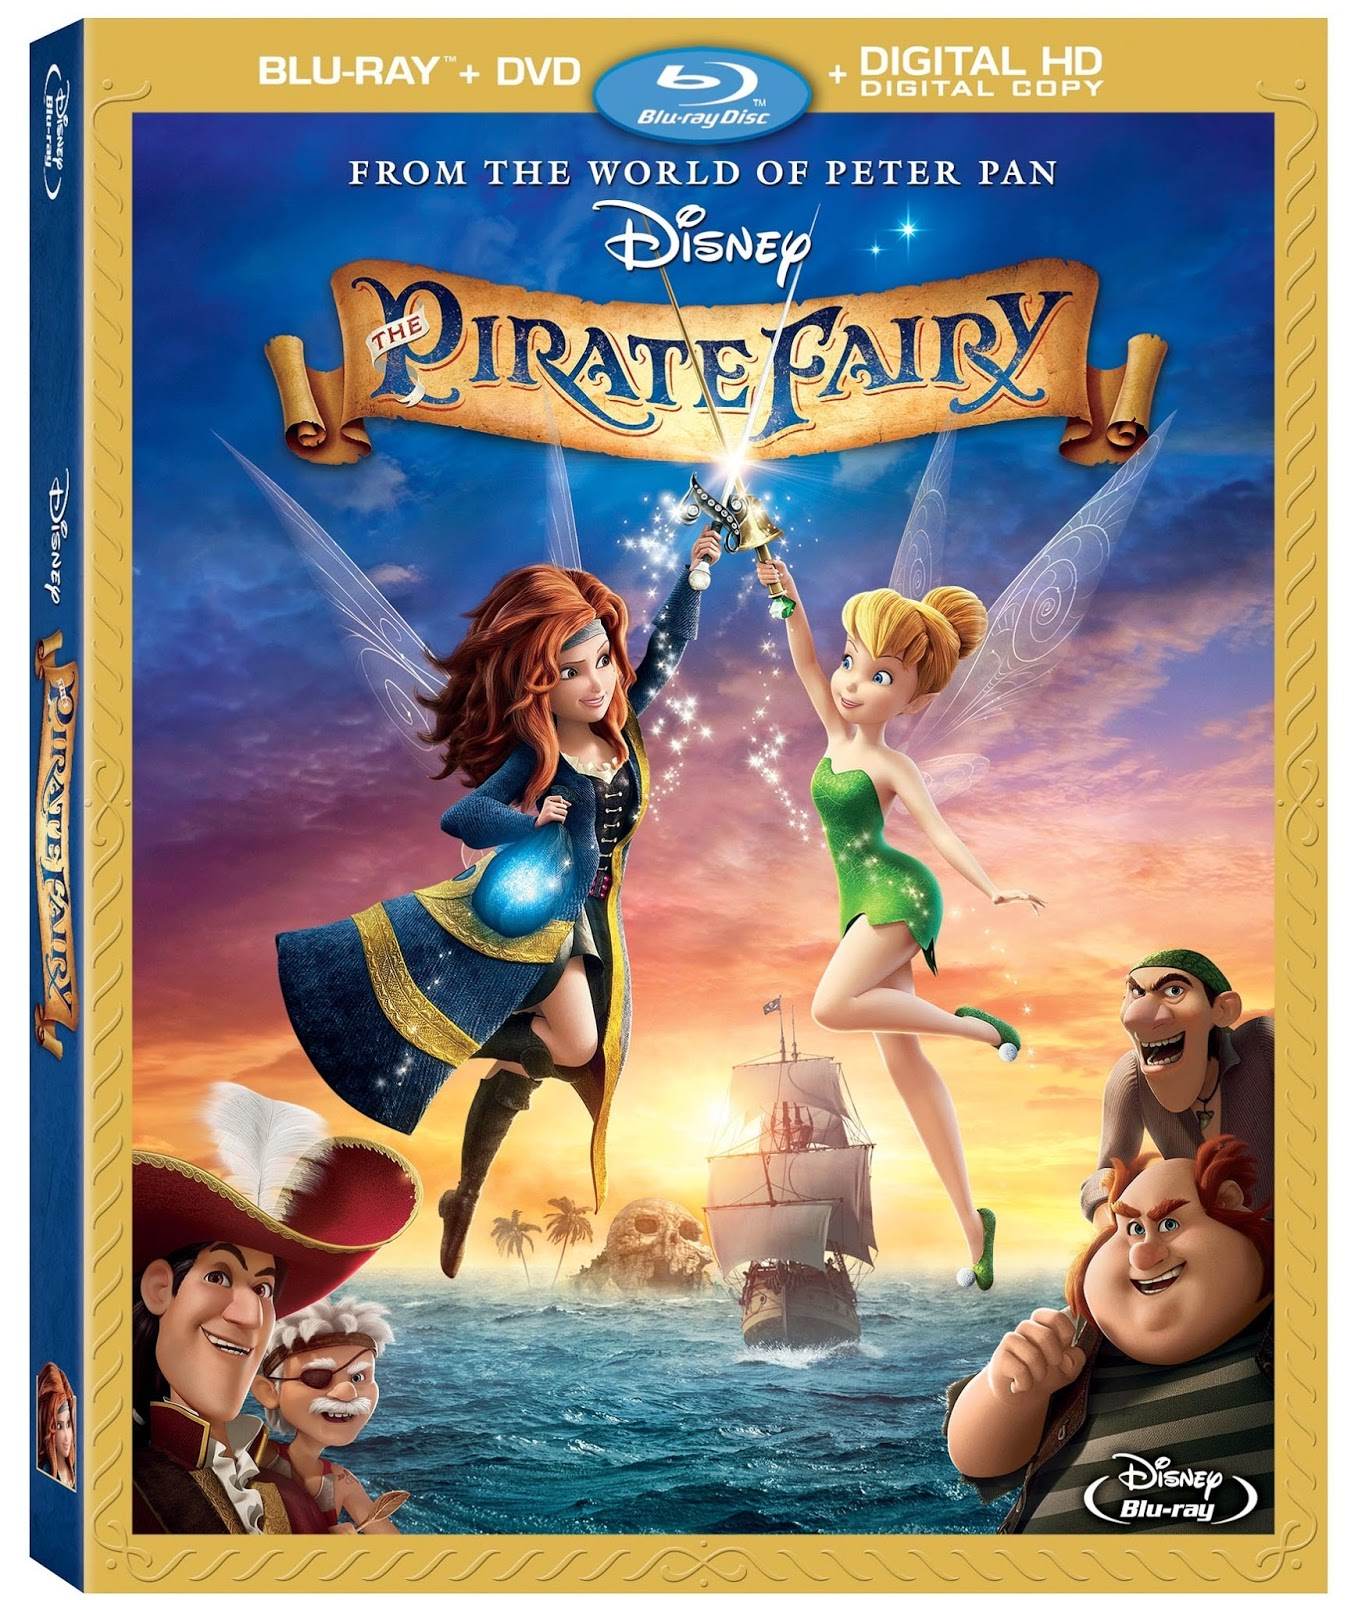 The Pirate Filme Disney Film Project The Pirate Fairy Blu Ray And Movie Review